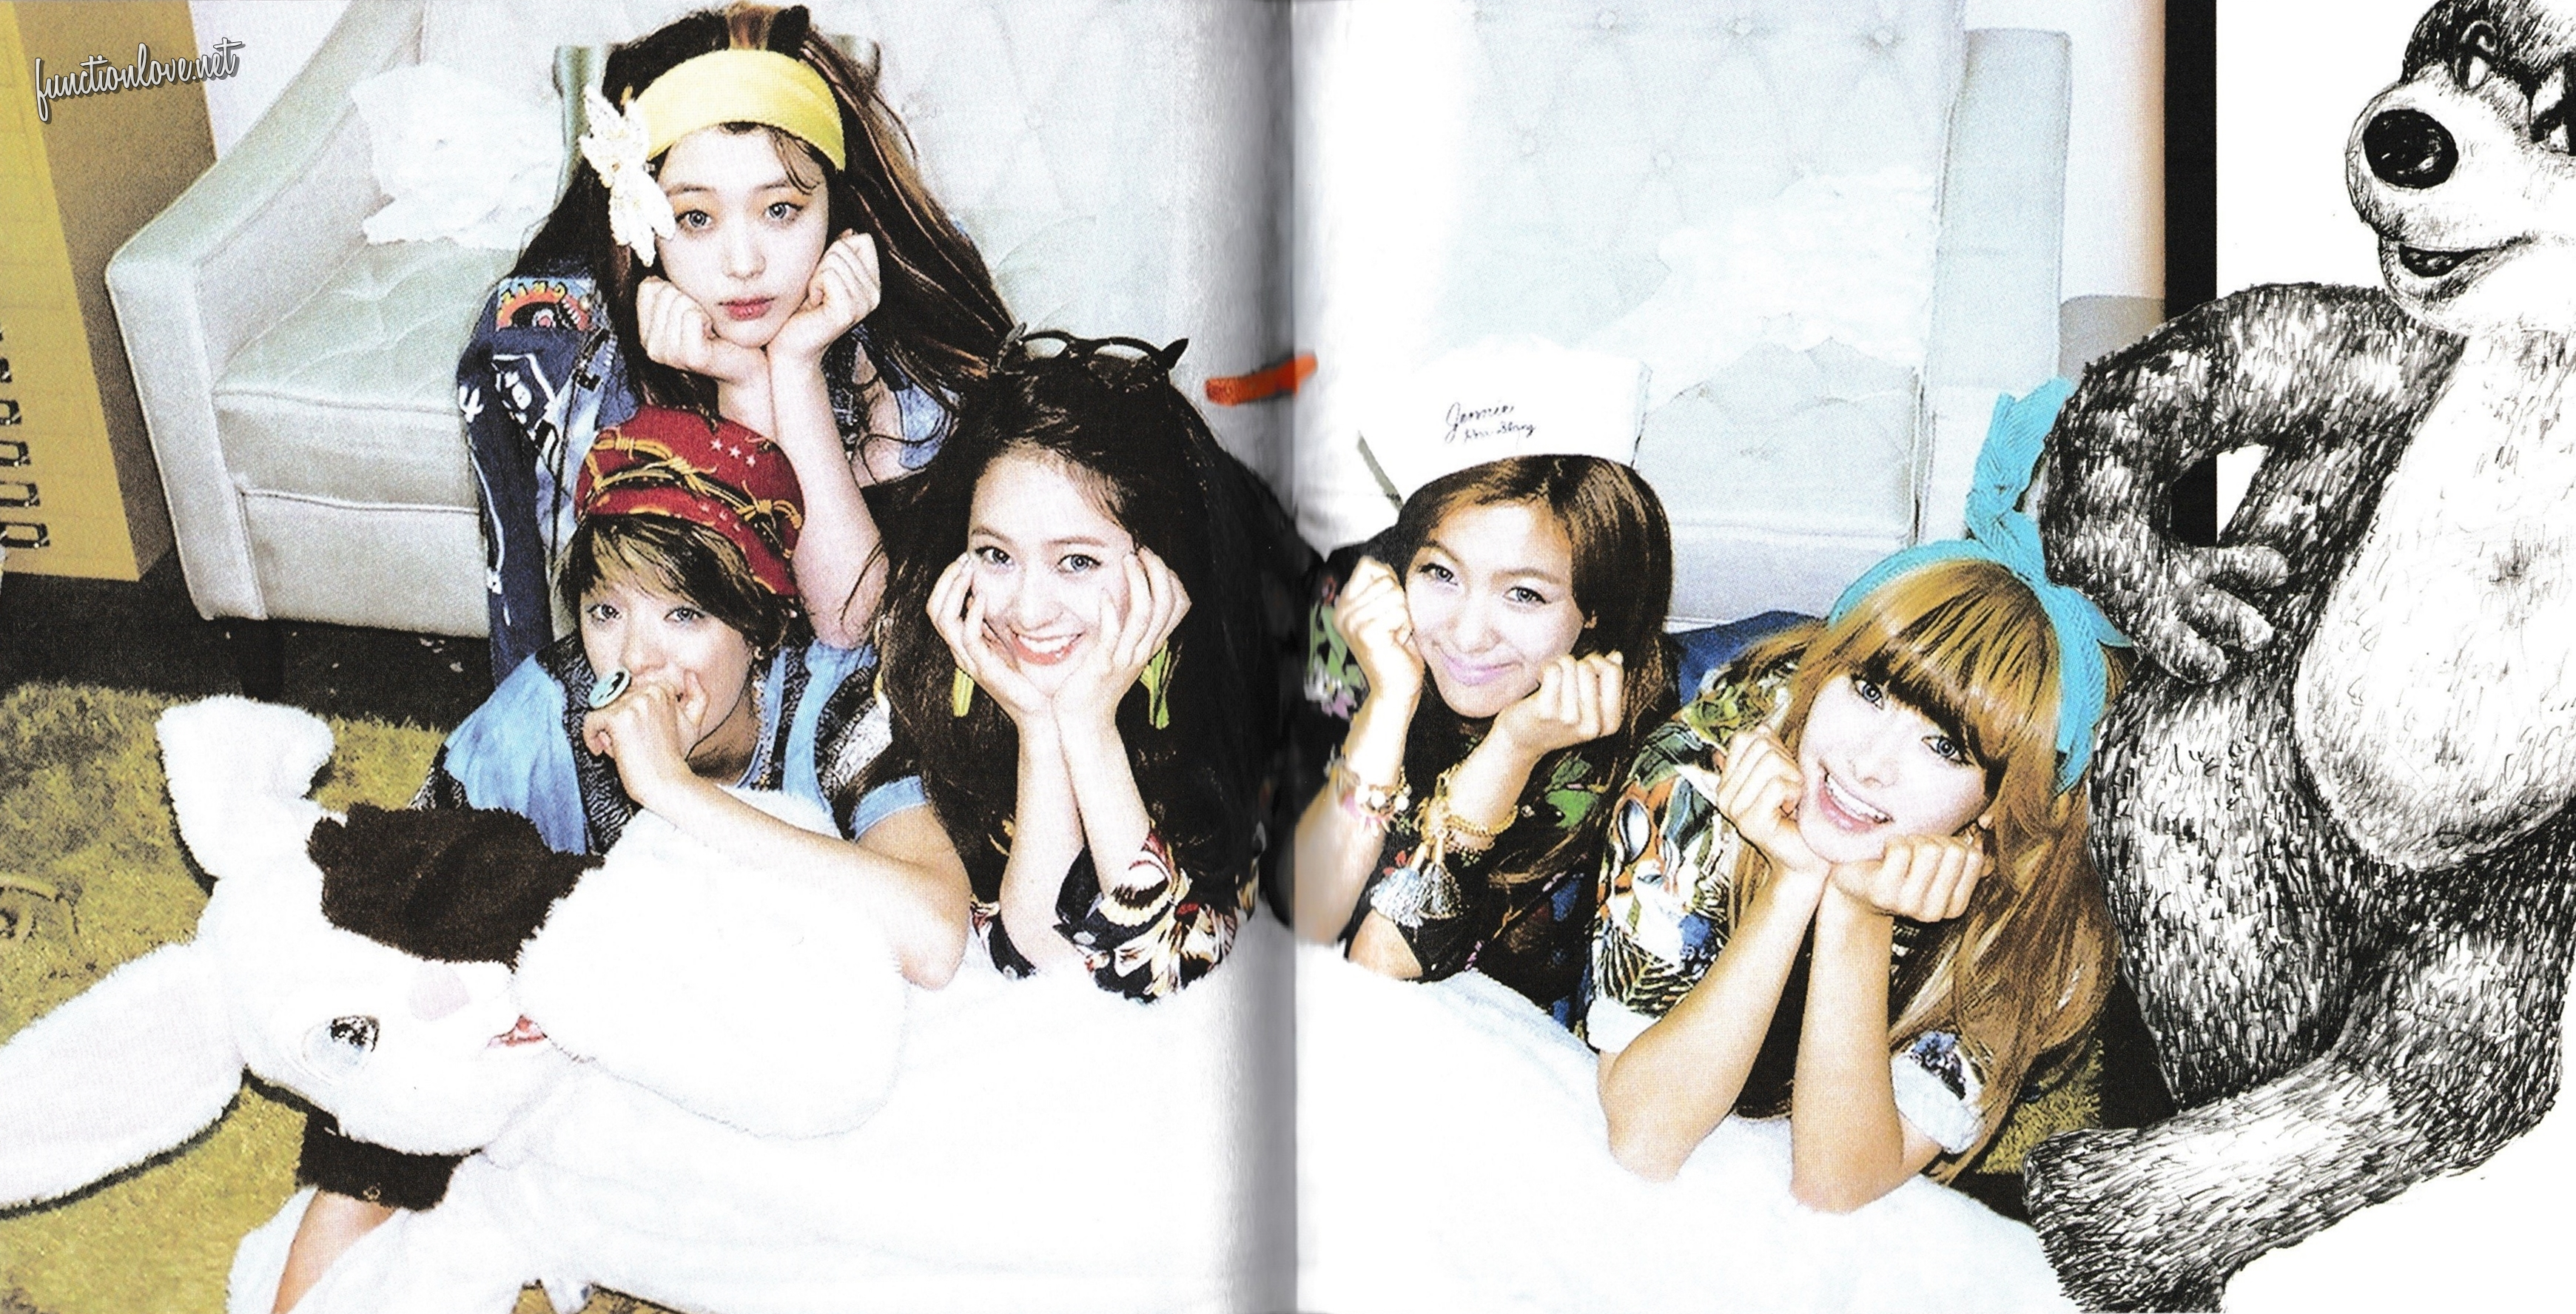 f(♥) Exclusives – [HQ SCANS+DL] f(x) 2nd Mini Album ... F(x) Electric Shock Album Cover